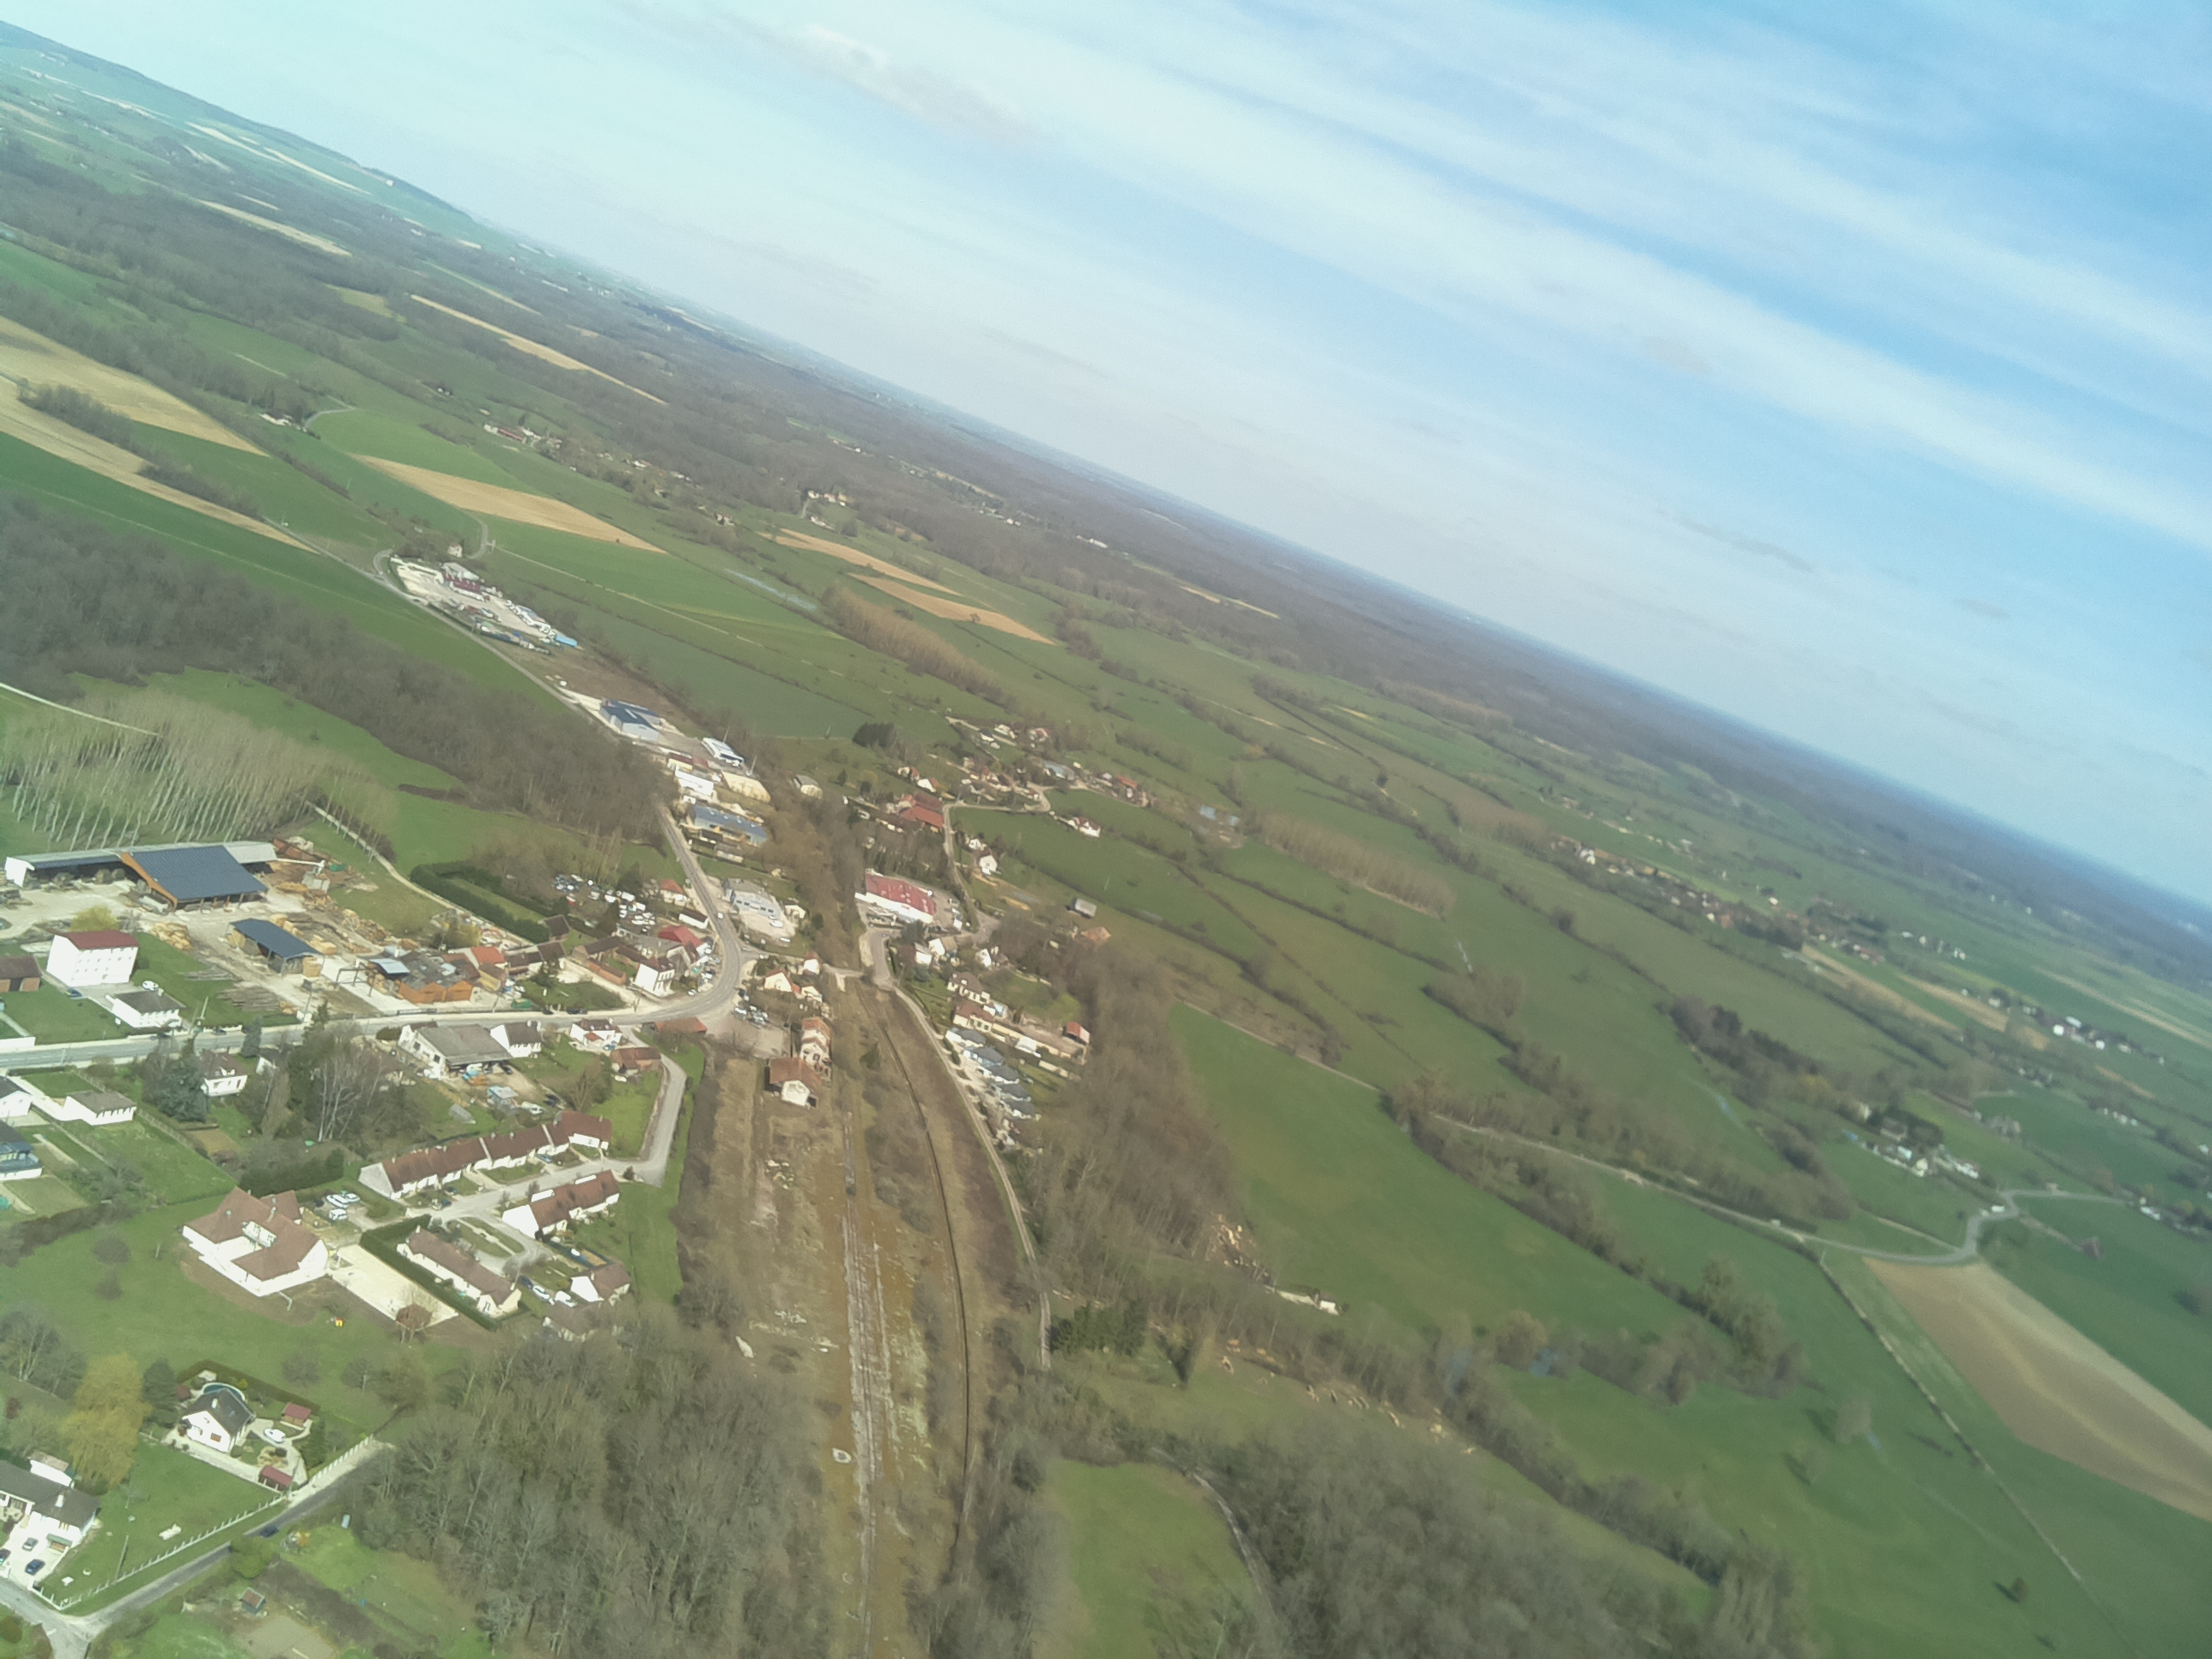 View of roads before landing